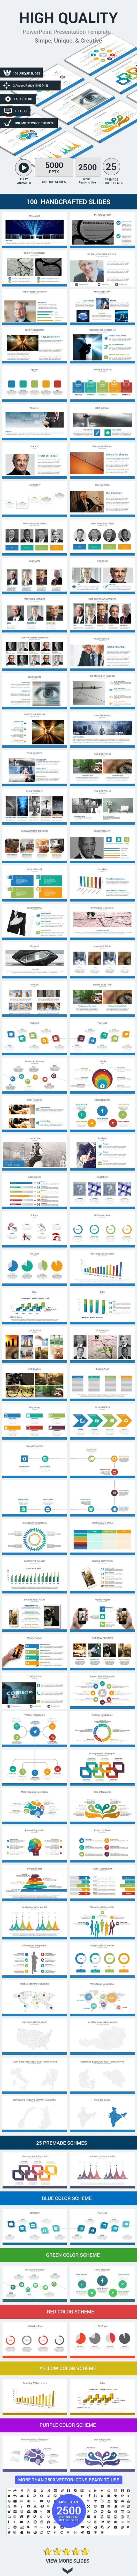 HIGH QUALITY PowerPoint Presentation Template (PowerPoint Templates)